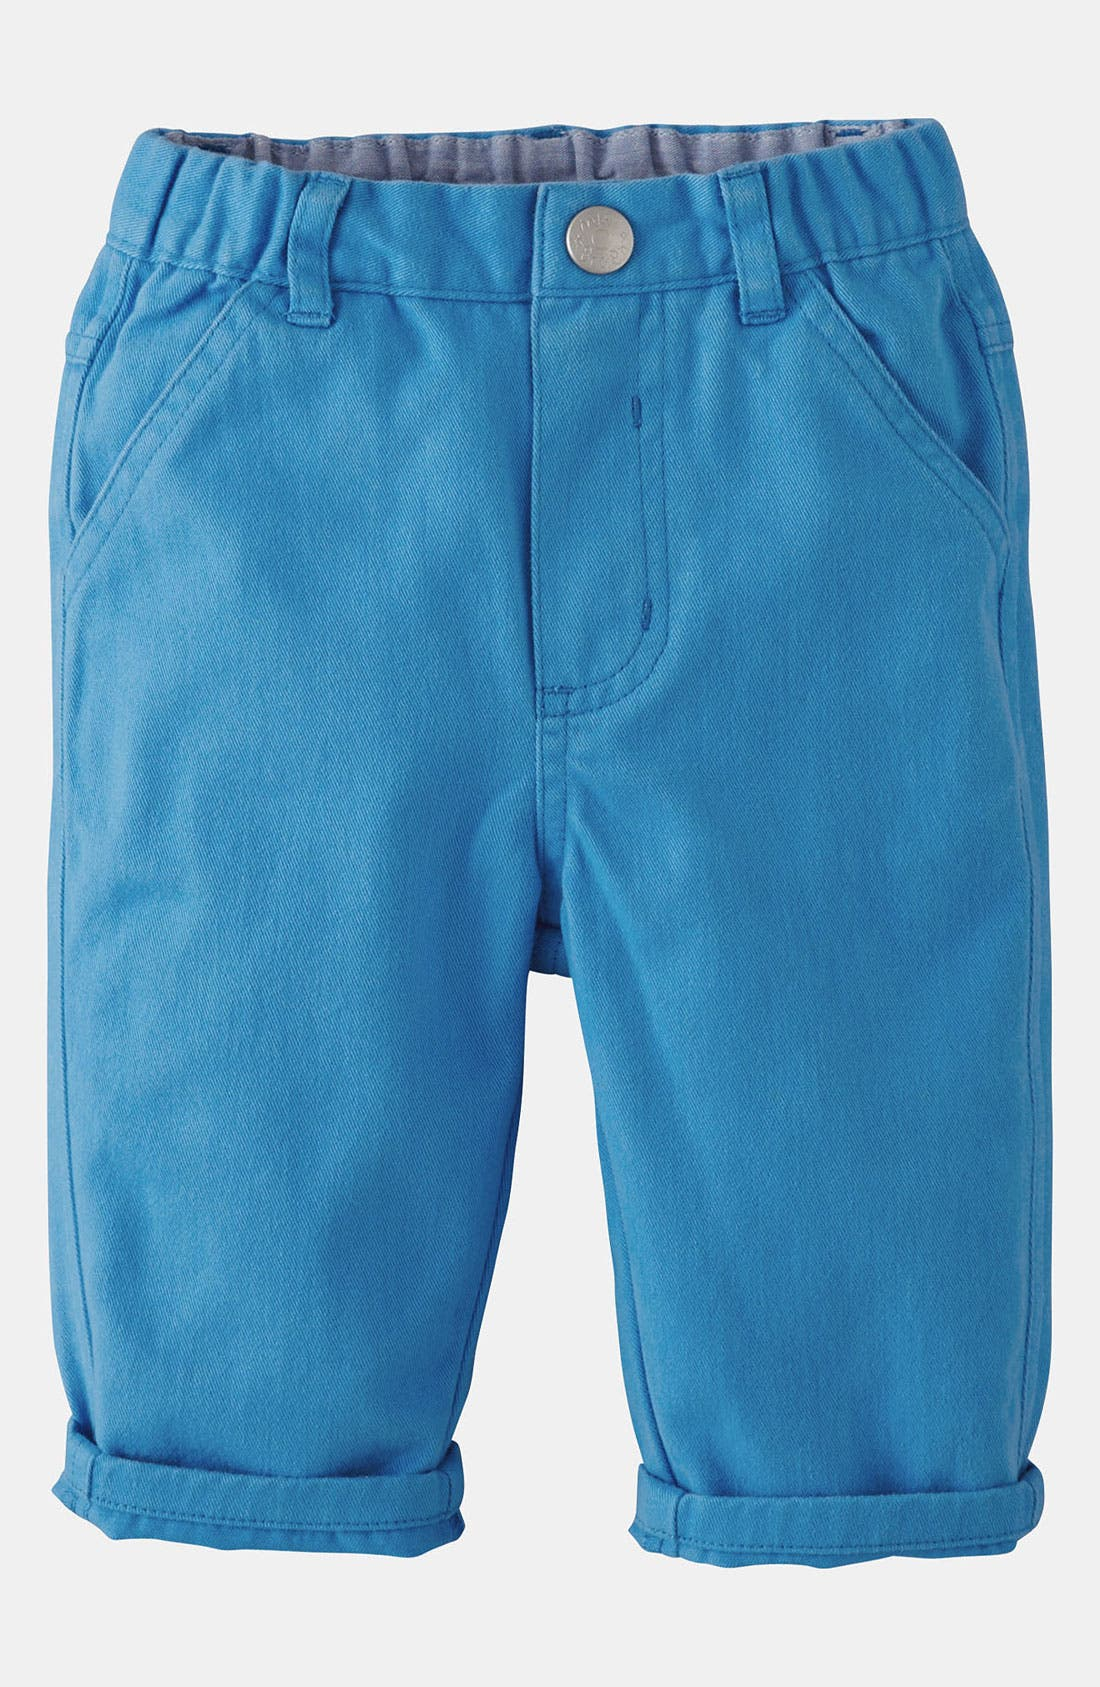 Alternate Image 1 Selected - Mini Boden 'Baby' Chino Pants (Baby)